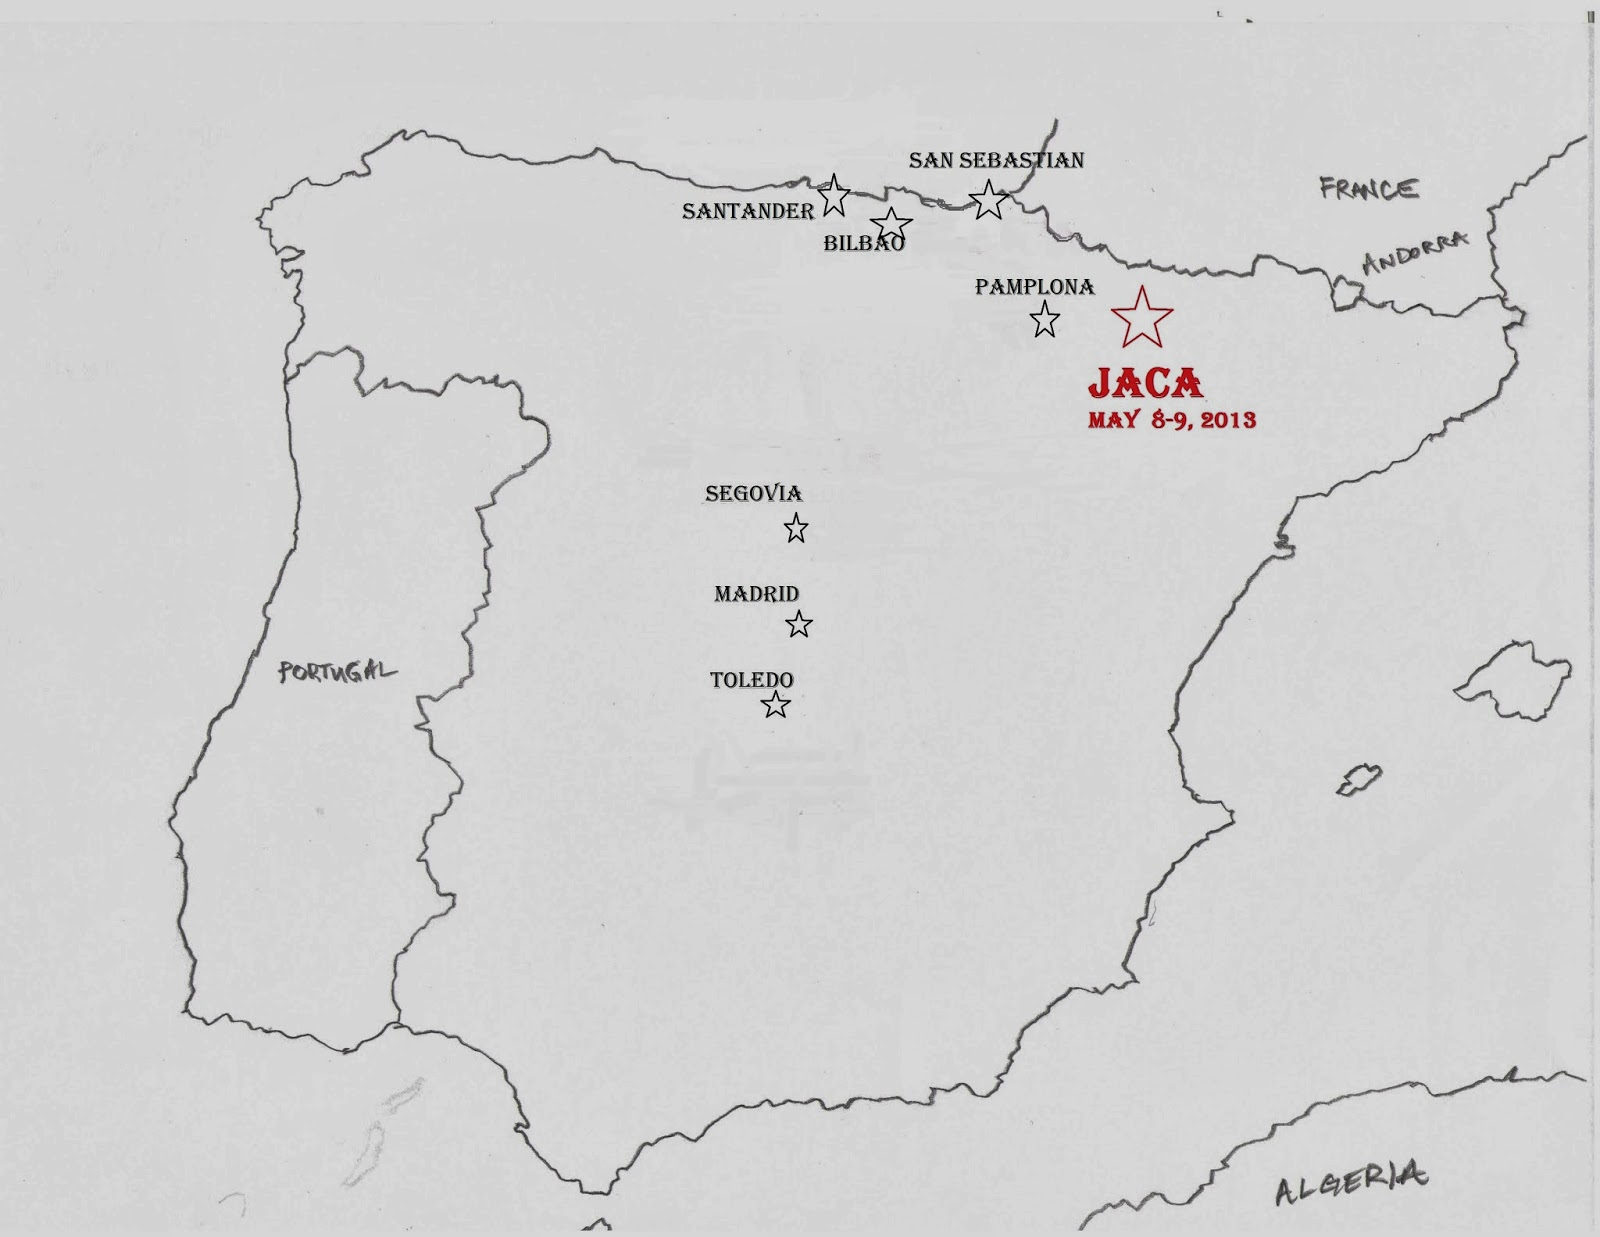 Wasatch Solo: Jaca, Spain (gateway to the Pyrenees), May 8